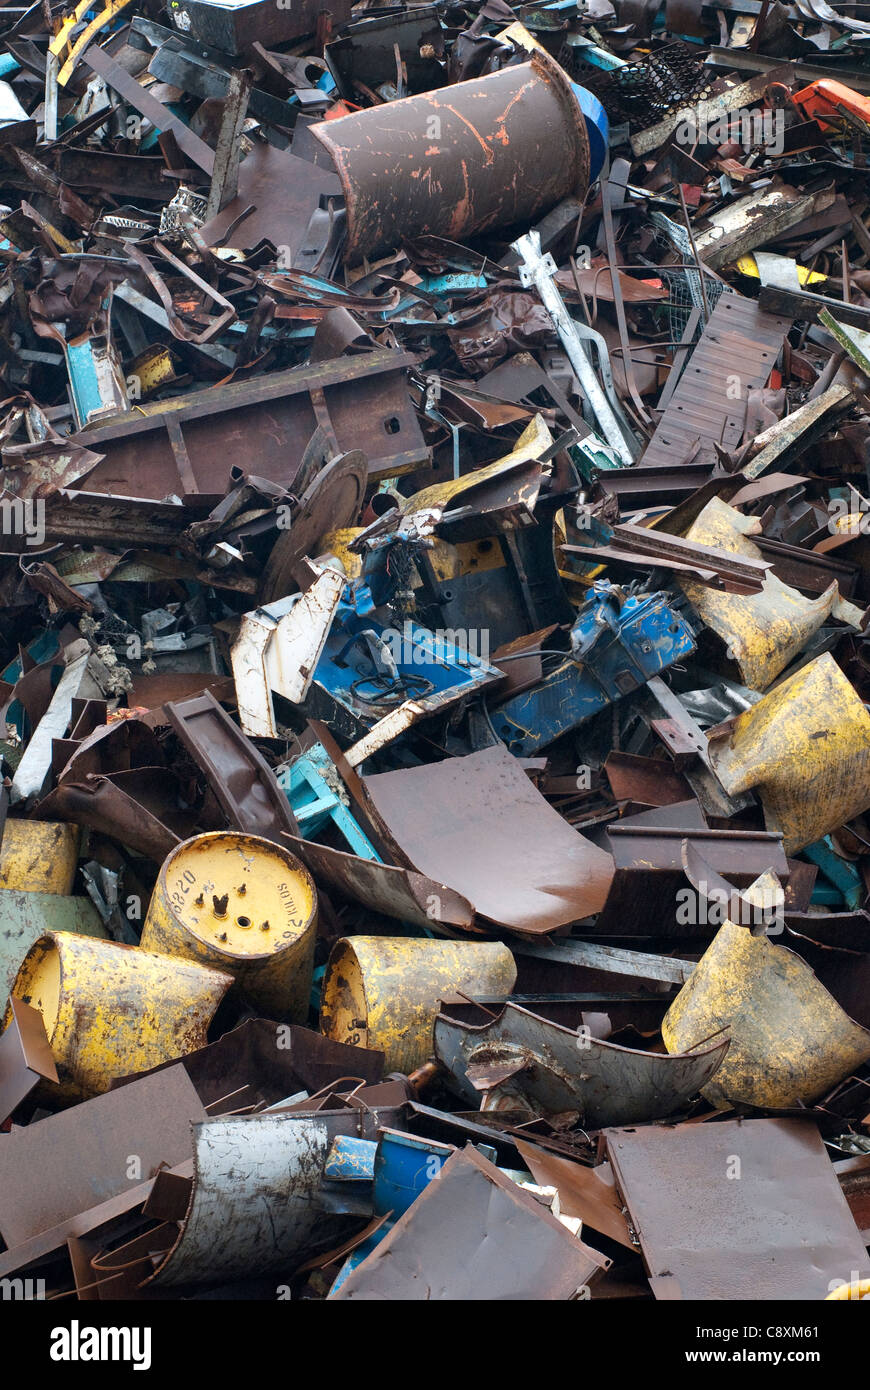 Scrap metal for recycling - Stock Image